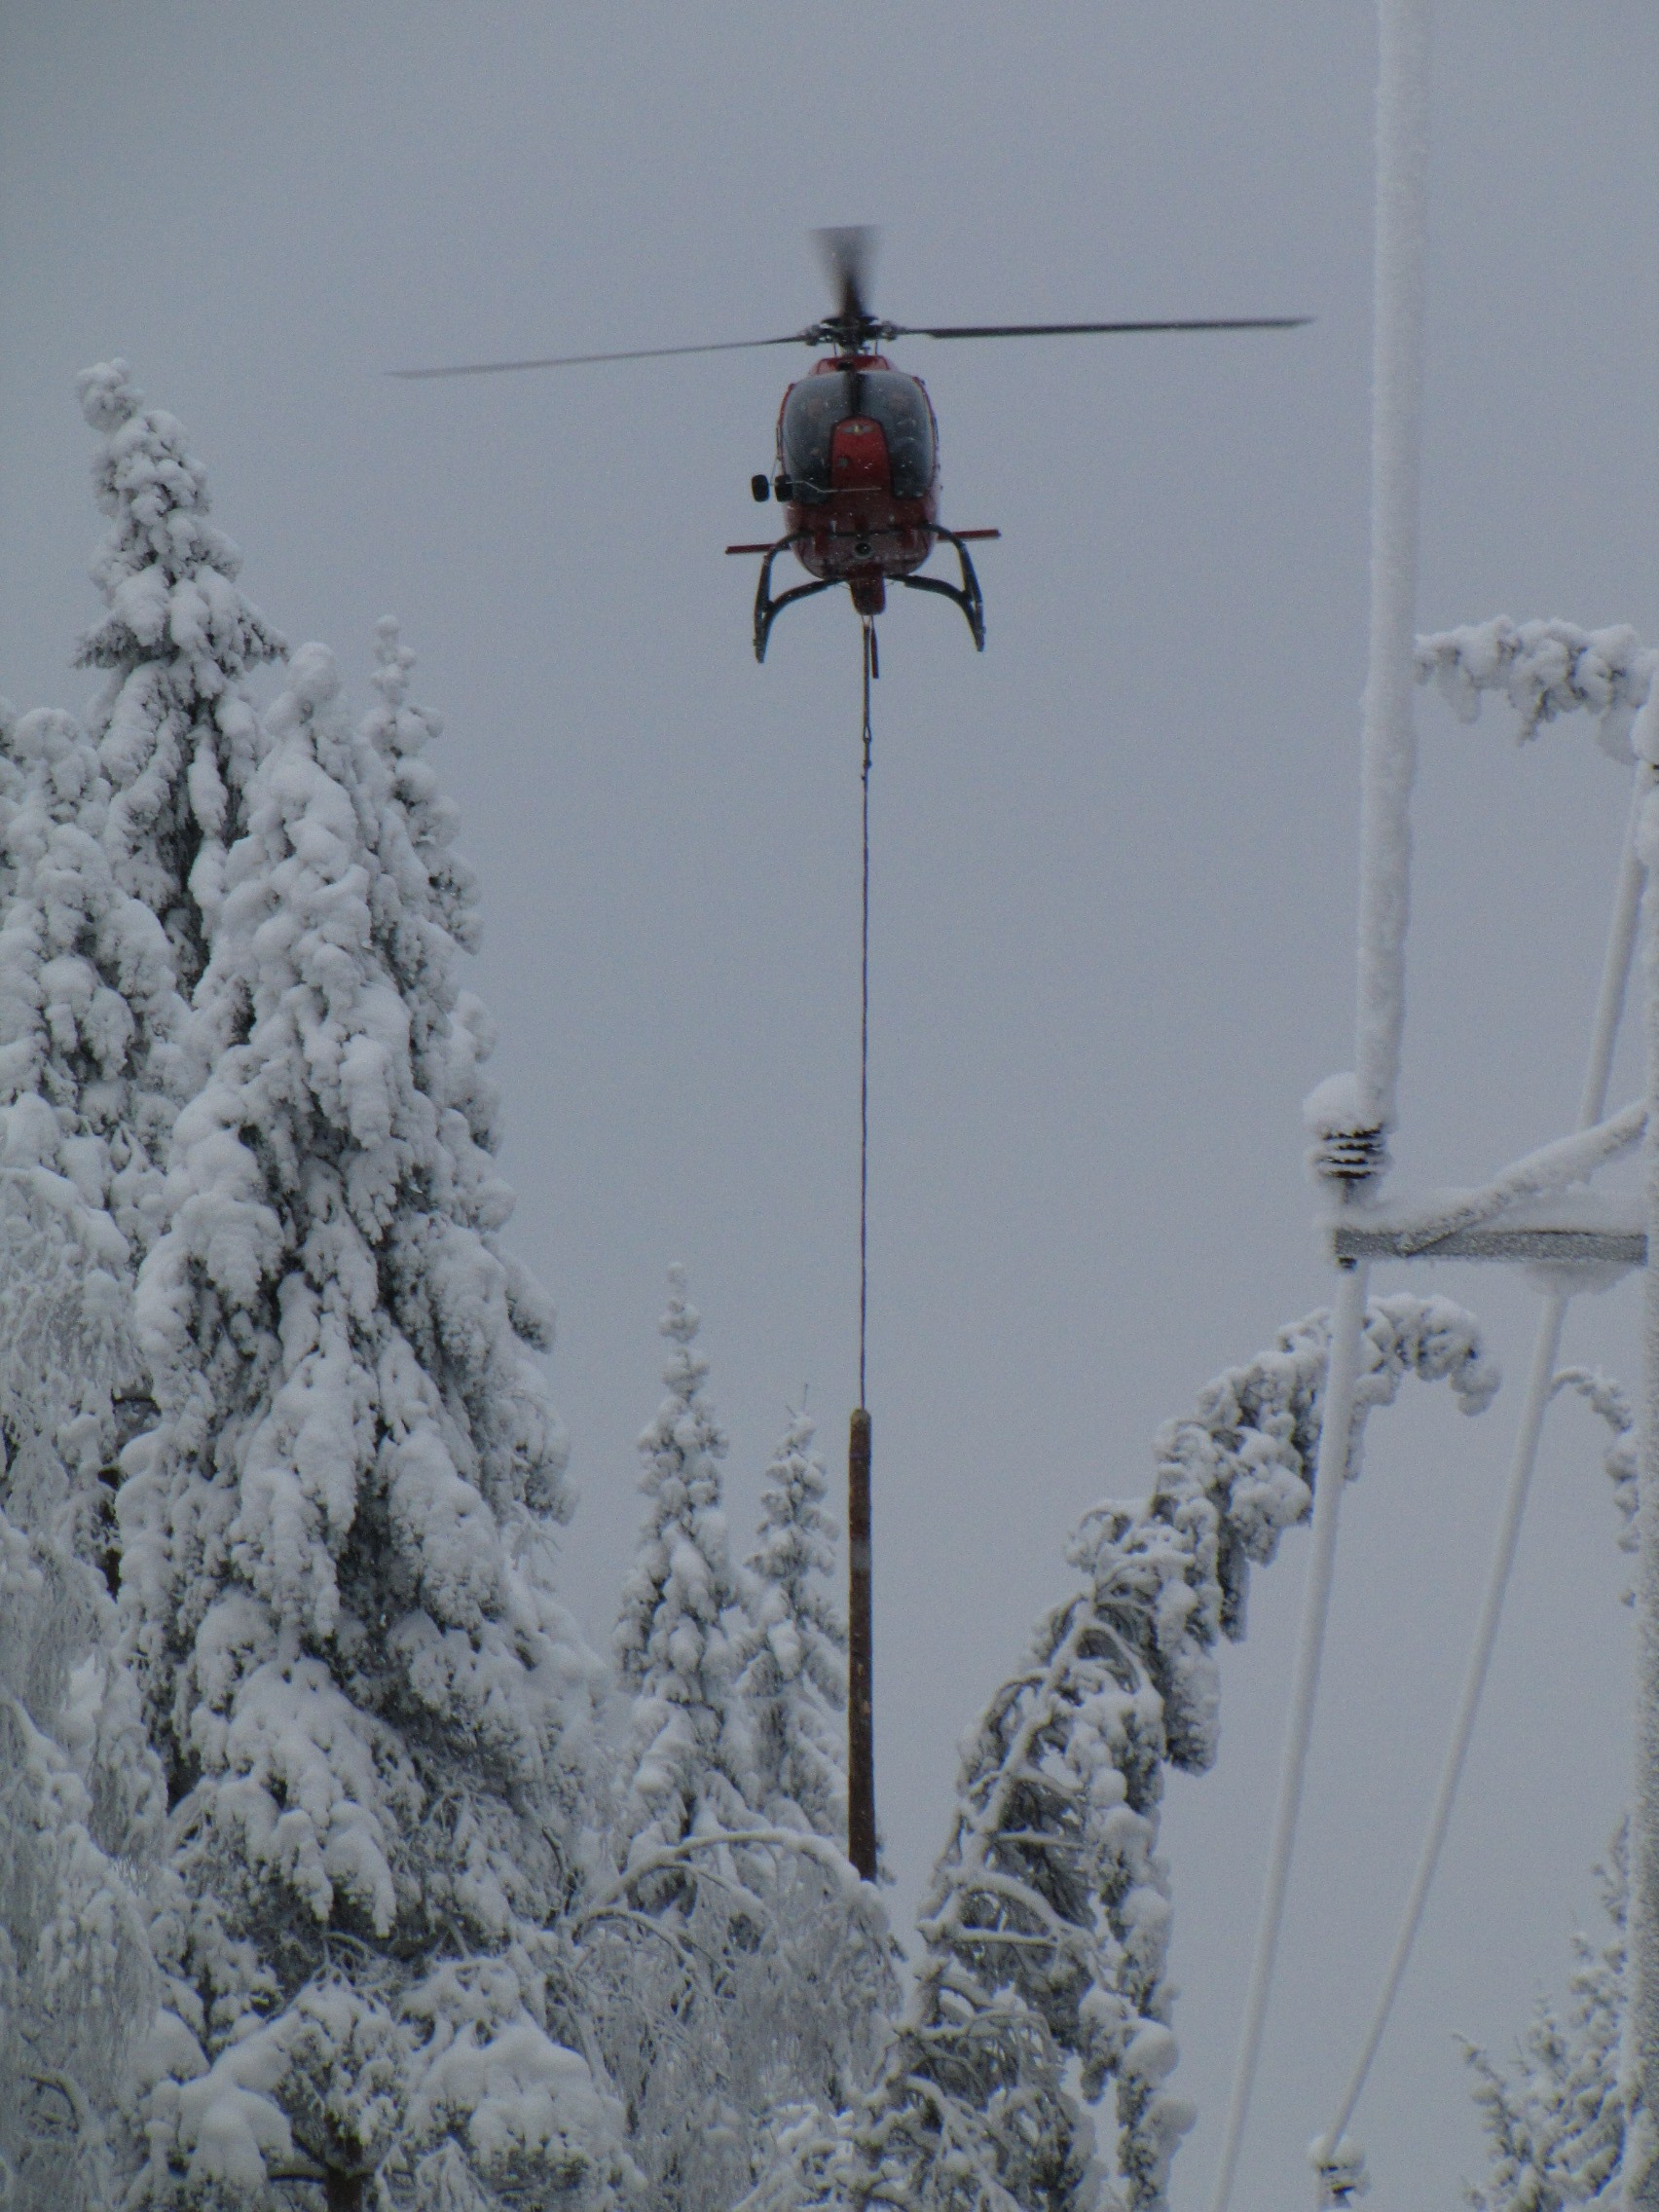 A helicopter is a great help in detecting, preventing and repairing the damage caused to power lines by snow load. It may take a long time to find a tree that has bent across or fallen down on a power line deep in the forest, unless you use a helicopter. They are also used to map areas with risk of snow load, and information on this can be sent to the maps of repair teams via the mobile network. The photo shows snow being dropped with the help of a helicopter pulling a short log attached to a wire rope along the edge of the power line corridor. The log hits the trees bent across the corridor and causes the snow to fall off. For the pilot, this is an extremely demanding task, as the log must be prevented from touching the power lines at all times. Photo: Elenia